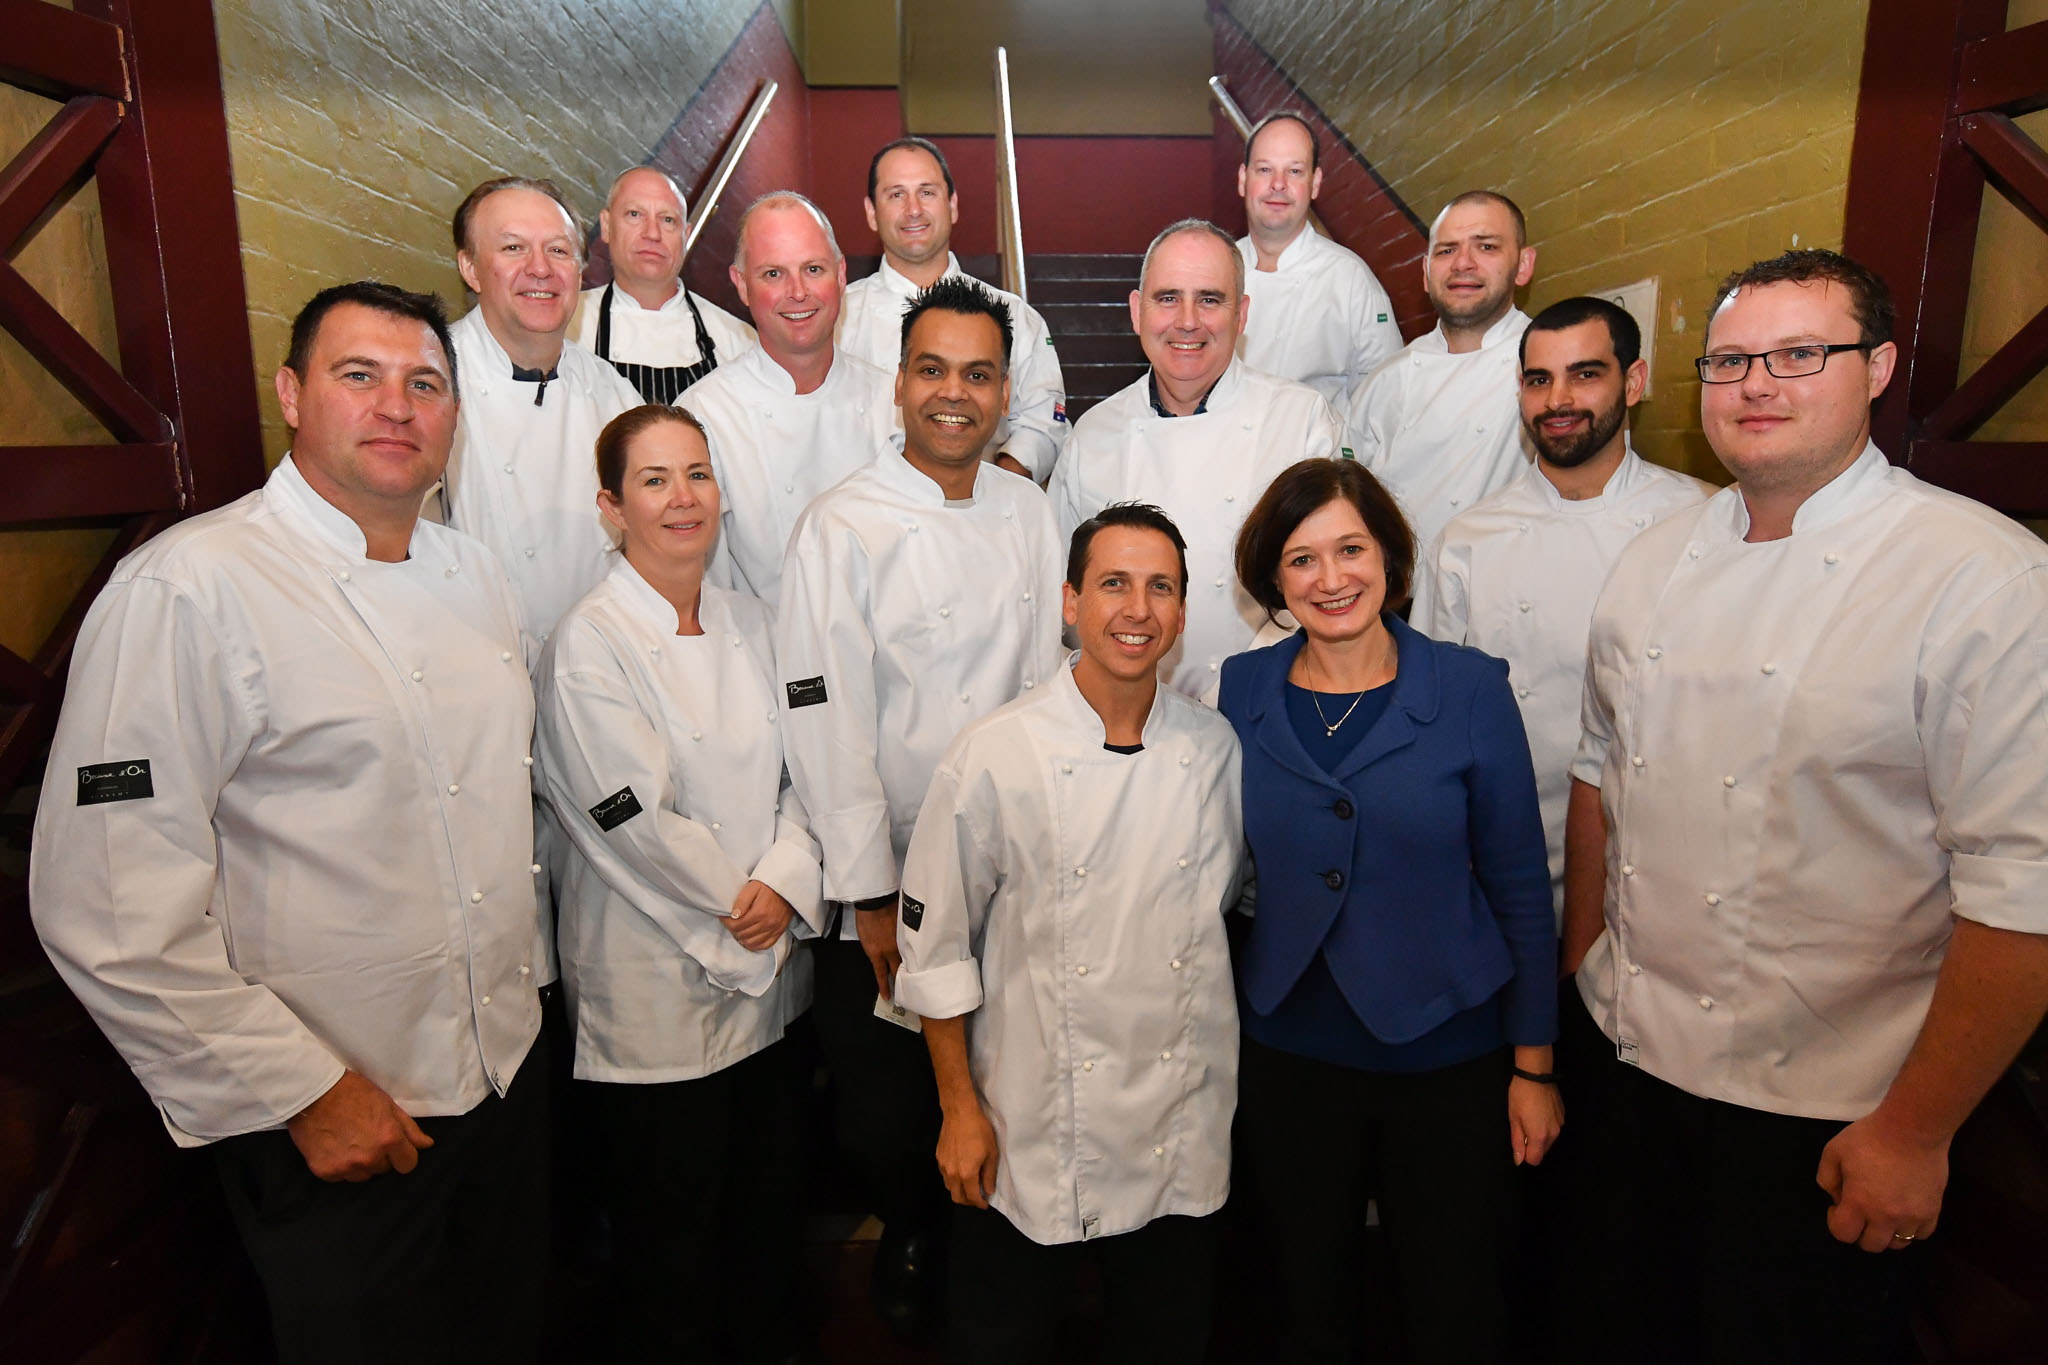 Melbourne, 30 May 2017 - The judges pose for a photograph with Trish Harty of Bocuse d'Or Australia at the Australian selection trials of the Bocuse d'Or culinary competition held during the Food Service Australia show at the Royal Exhibition Building in Melbourne, Australia.   Mark Agius from the William Angliss Institute a judge of the fish plate Donovan Cooke from The Atlantic Restaurant a judge of the fish plate Alexander McIntosh from At The Heads a judge of the fish plate Andre Smaniotto from the Geelong Cats a judge of the fish plate Simon Cosentino former Commis competitor Bocuse d'Or 2007-9 a judge of the meat plate Florent Gerardin from the Newmarket Hotel a judge of the meat plate Deepak Mishra from The Langham Hotel a judge of the meat plate Mark Weatherley from Les Toques Blanches a judge of the meat plate Karen Doyle from Le Cordon Bleu kitchen invigilator judge Glenn Flood from the ALH Group kitchen invigilator judge John McFadden from the Parkroyal Hotel Darling Harbour kitchen invigilator judge Head judge Philippe Mouchel from the Philippe Restaurant kitchen invigilator judge Tom Milligan of the Bocuse d'Or Academy AustraliaPhoto Sydney Low